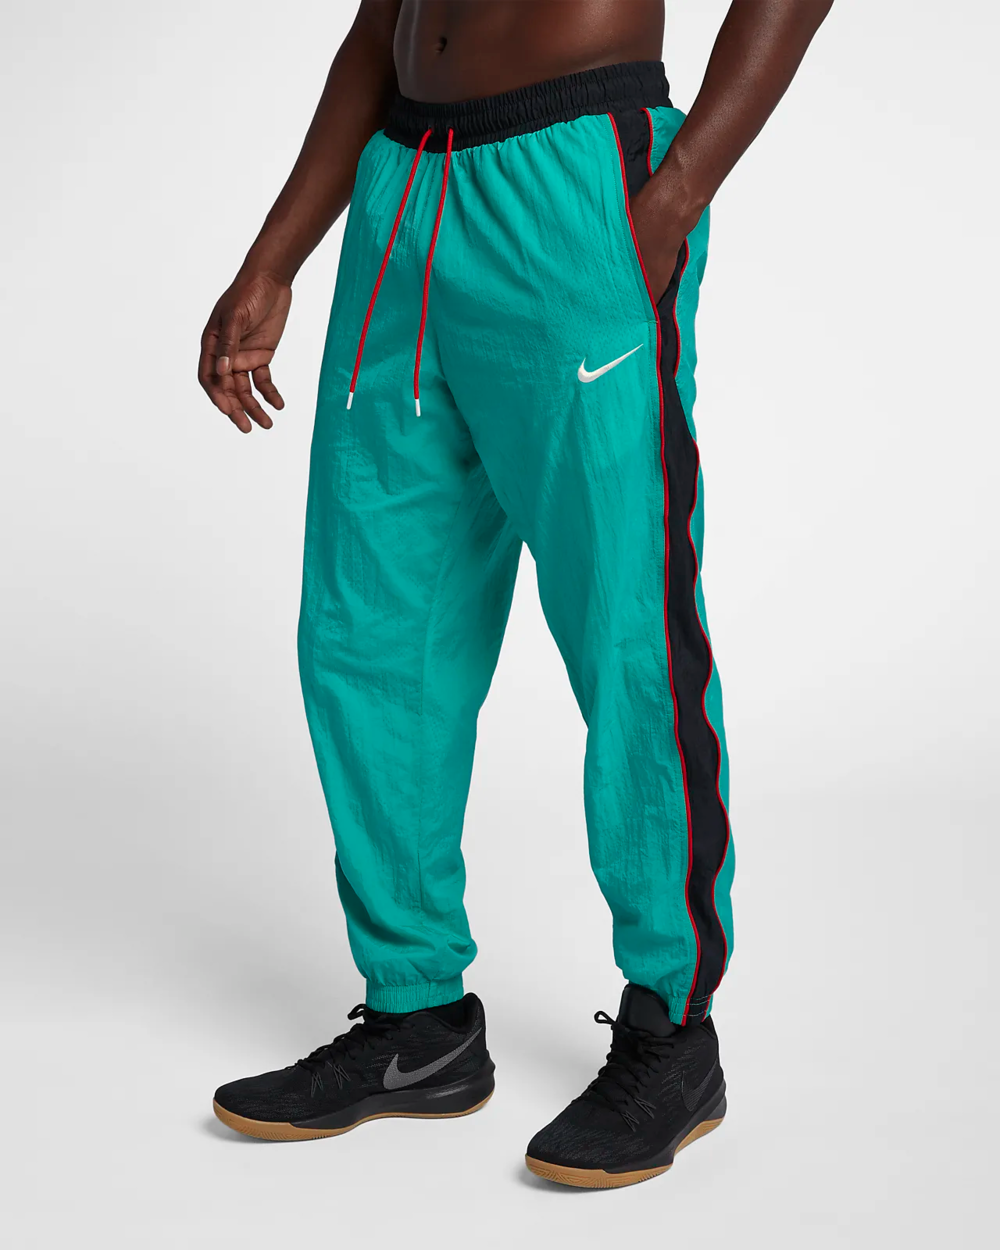 throwback-mens-woven-tracksuit-basketball-pants-cFcVn5 (4).png